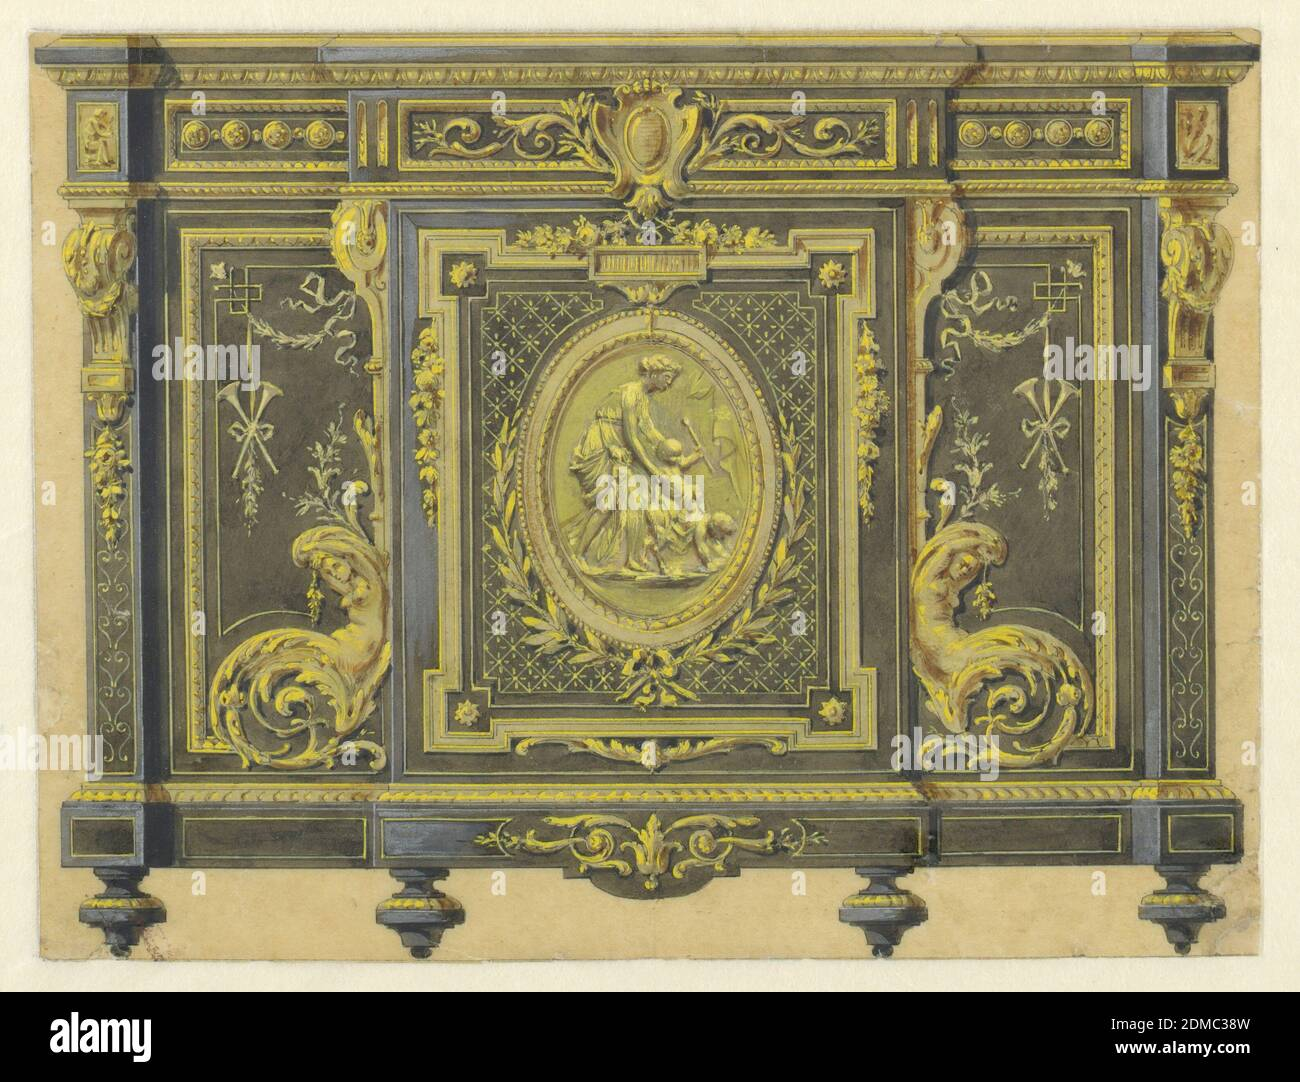 Design of a Cabinet in the Louis XVI Style, Pen and brown ink, brush and wash, gold paint, gouache on tracing paper, This drawing depicts a cabinet in the Louis XVI style ornately decorated with gilt-bronze mounts. The center panel consists of an oval medallion featuring a relief of the young Bacchus holding a thyrsus; he is supported by a standing Maenad (Bacchante) while he rides astride the back of a young satyr. Garlands, laurel leaves, herms, brackets and cartouches symmetrically decorate the cabinet., France, ca. 1860, furniture, Drawing Stock Photo